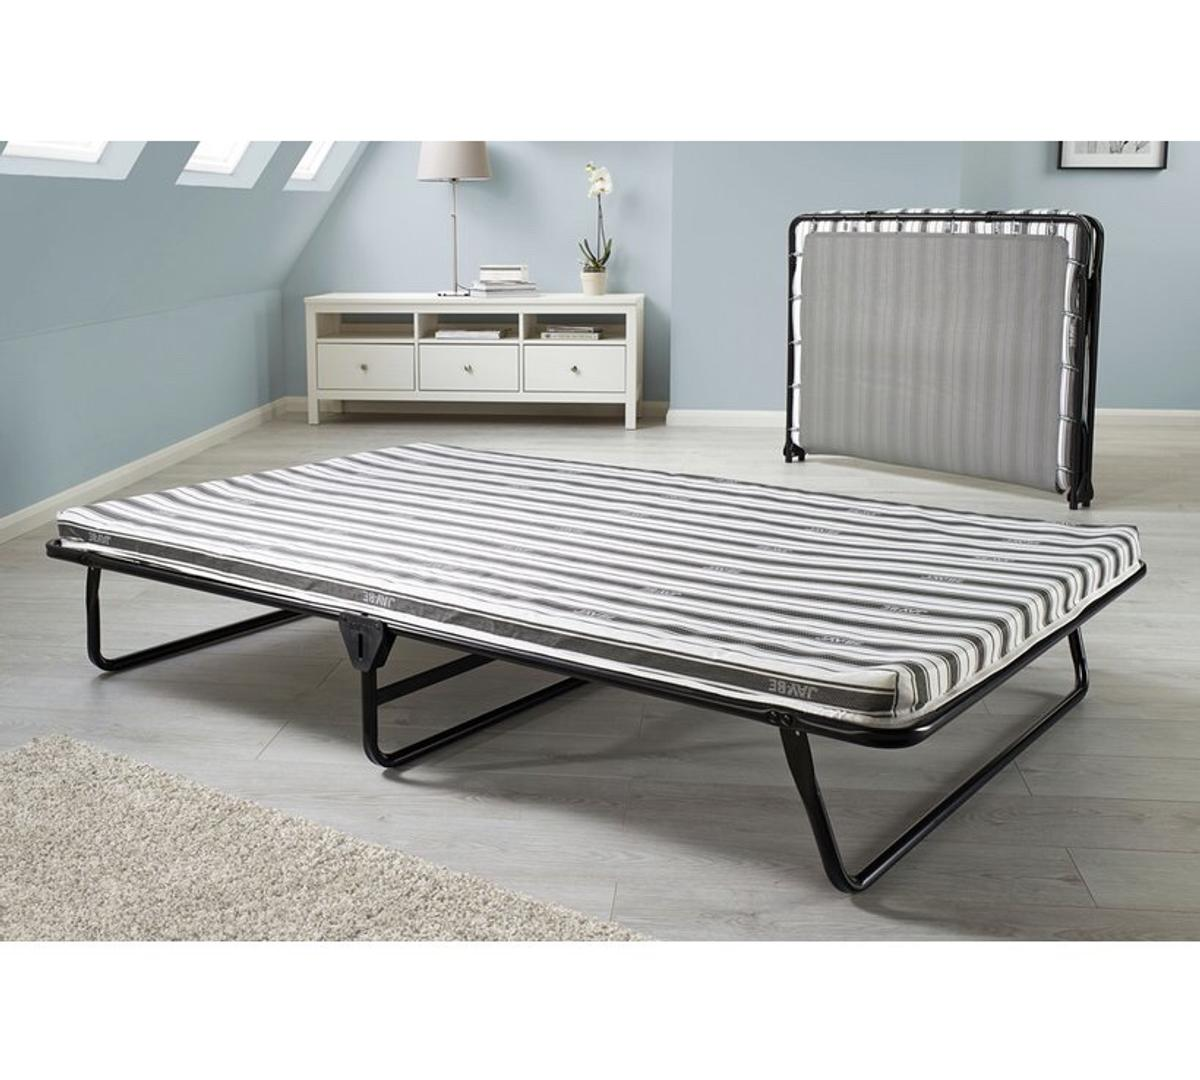 - Jay-b Double Folding Guest Bed In SL9 Chiltern For £50.00 For Sale